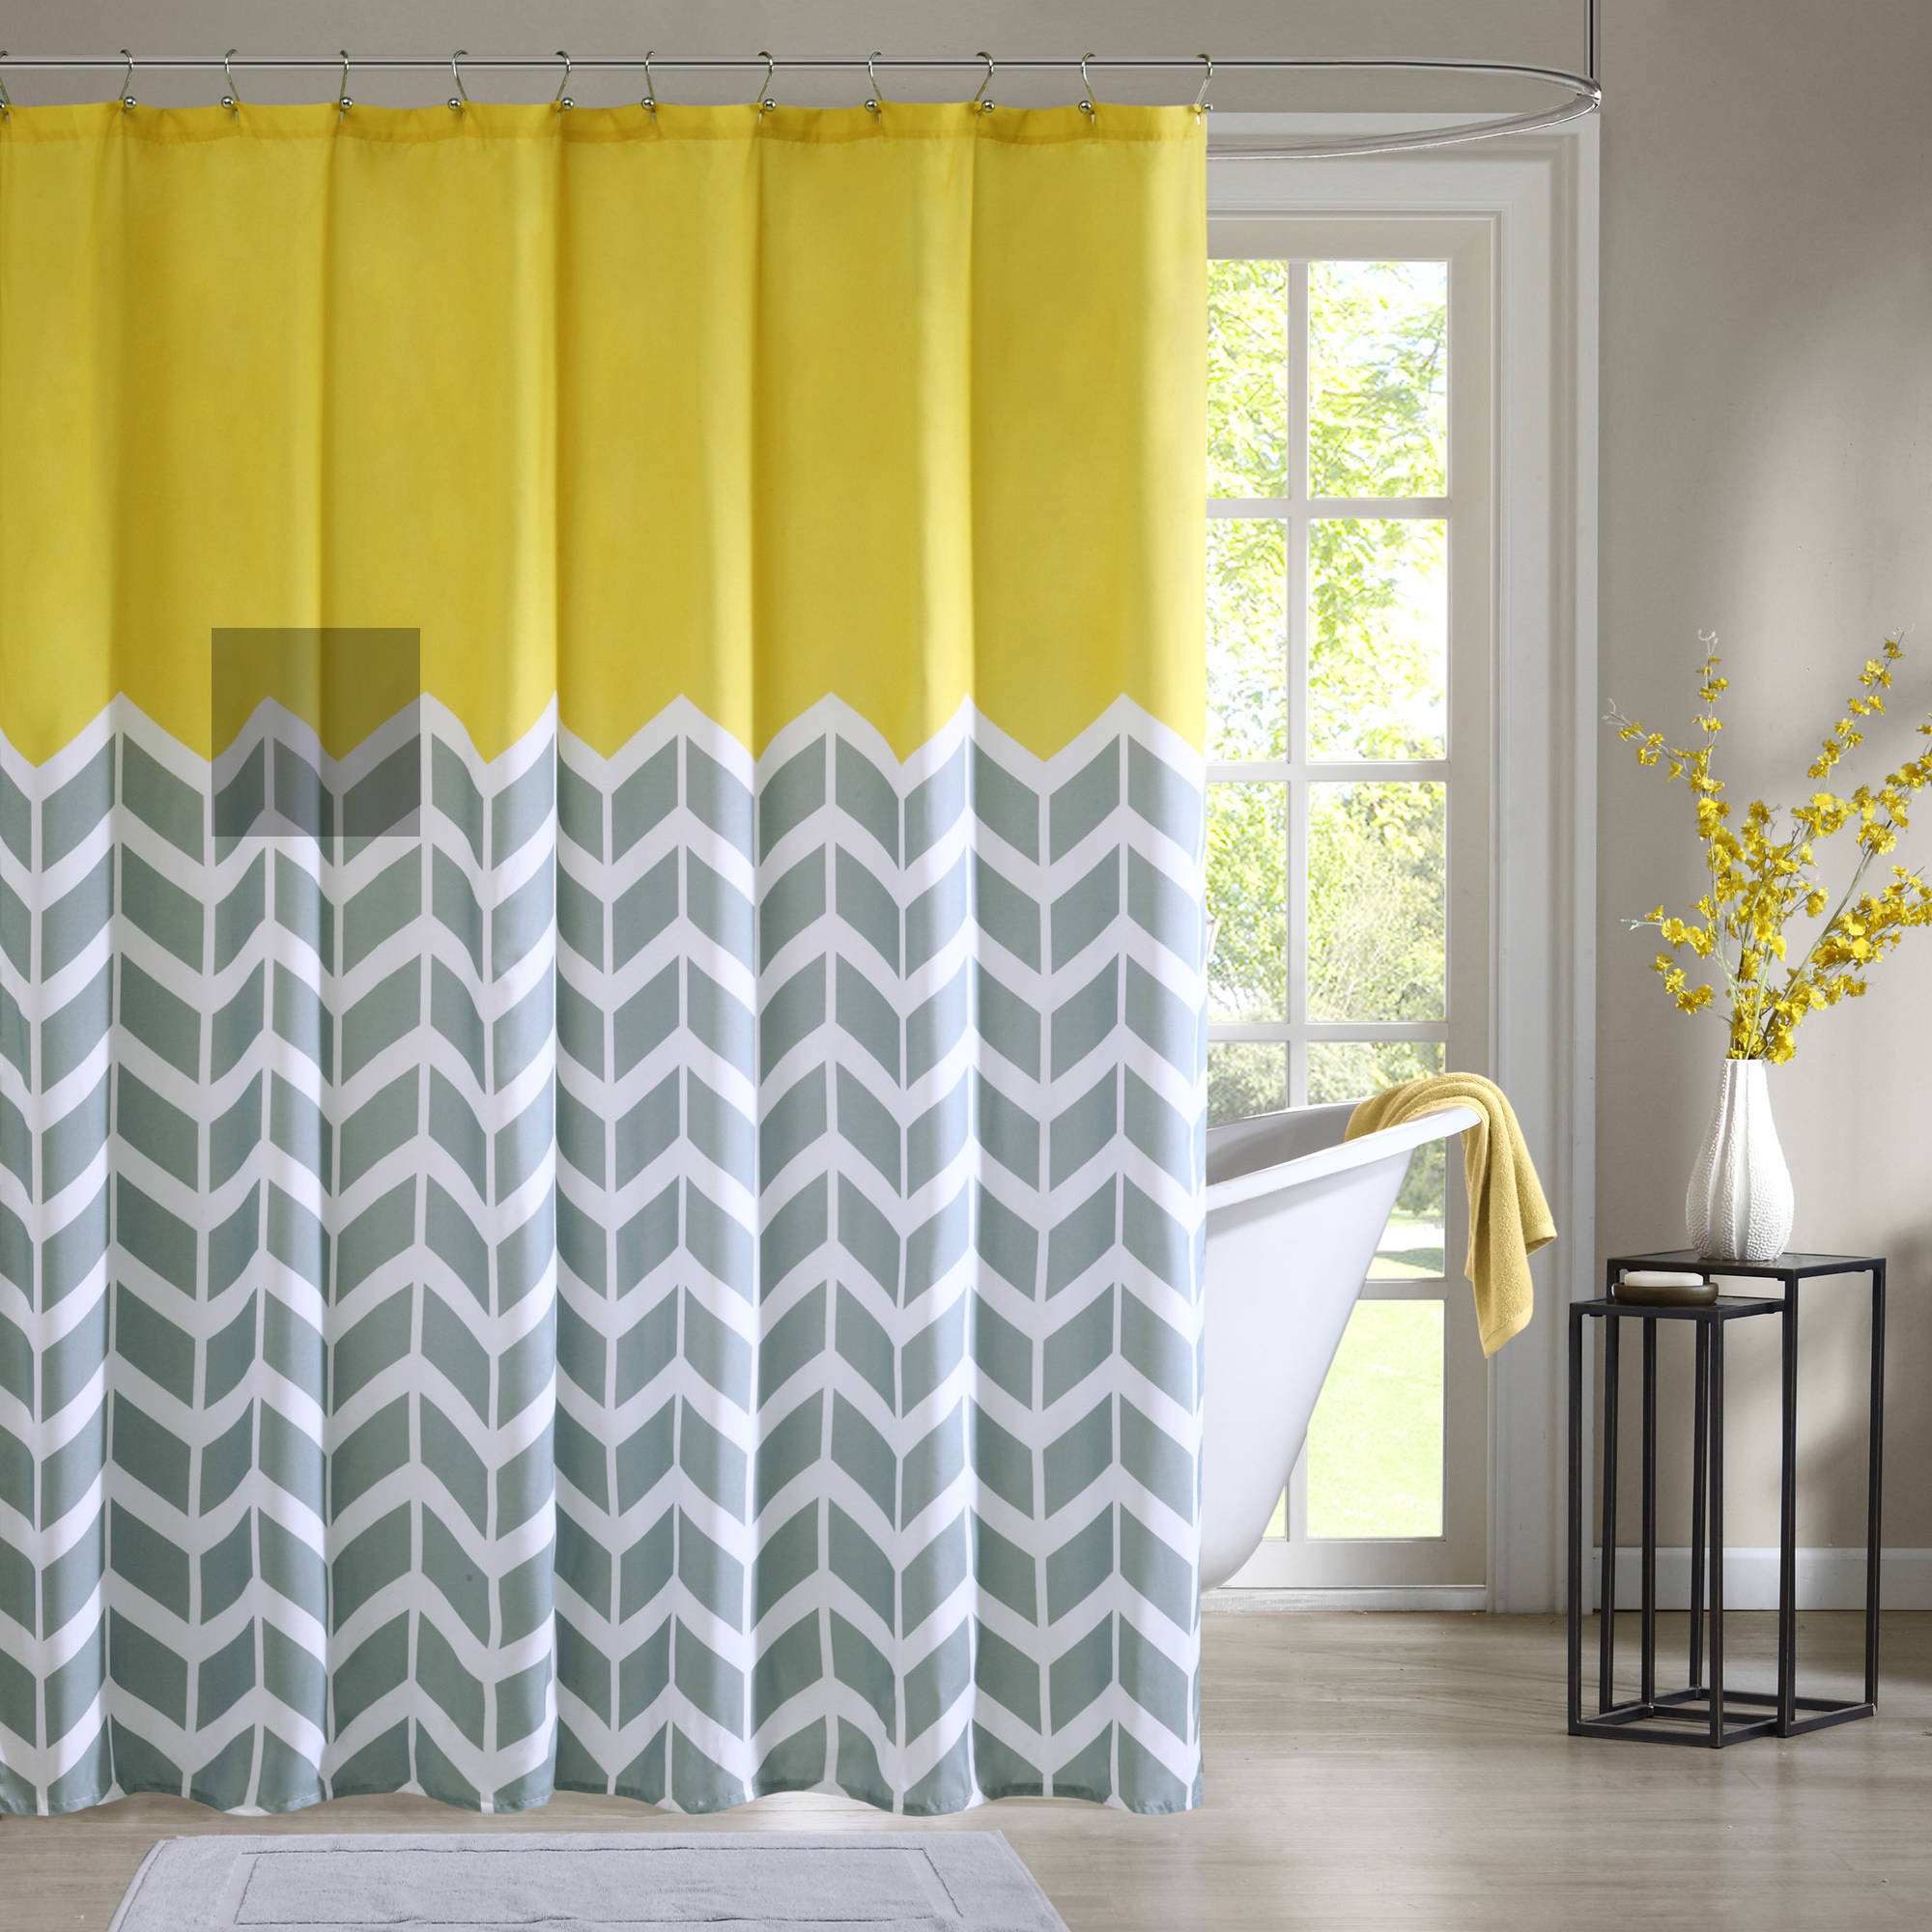 Home Essence Apartment Darcy 100% Microfiber Printed Shower Curtain